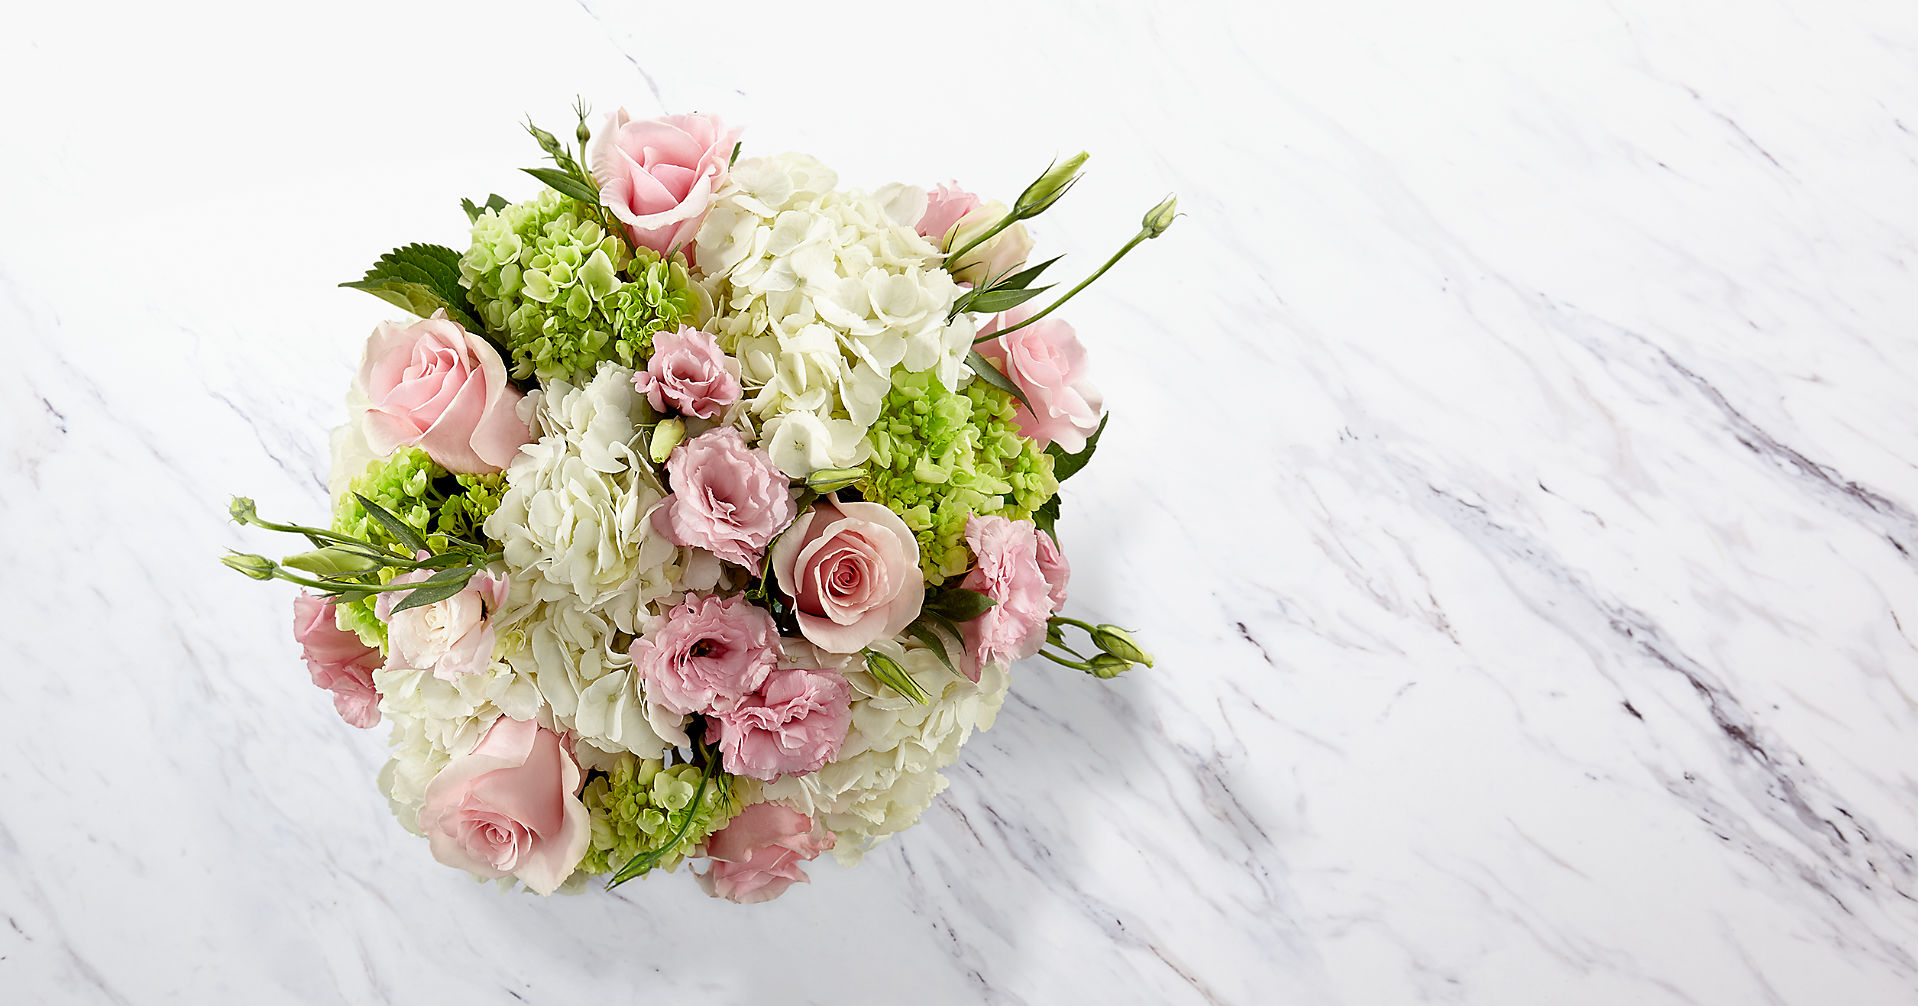 Always Smile™ Luxury Bouquet - Image 2 Of 4